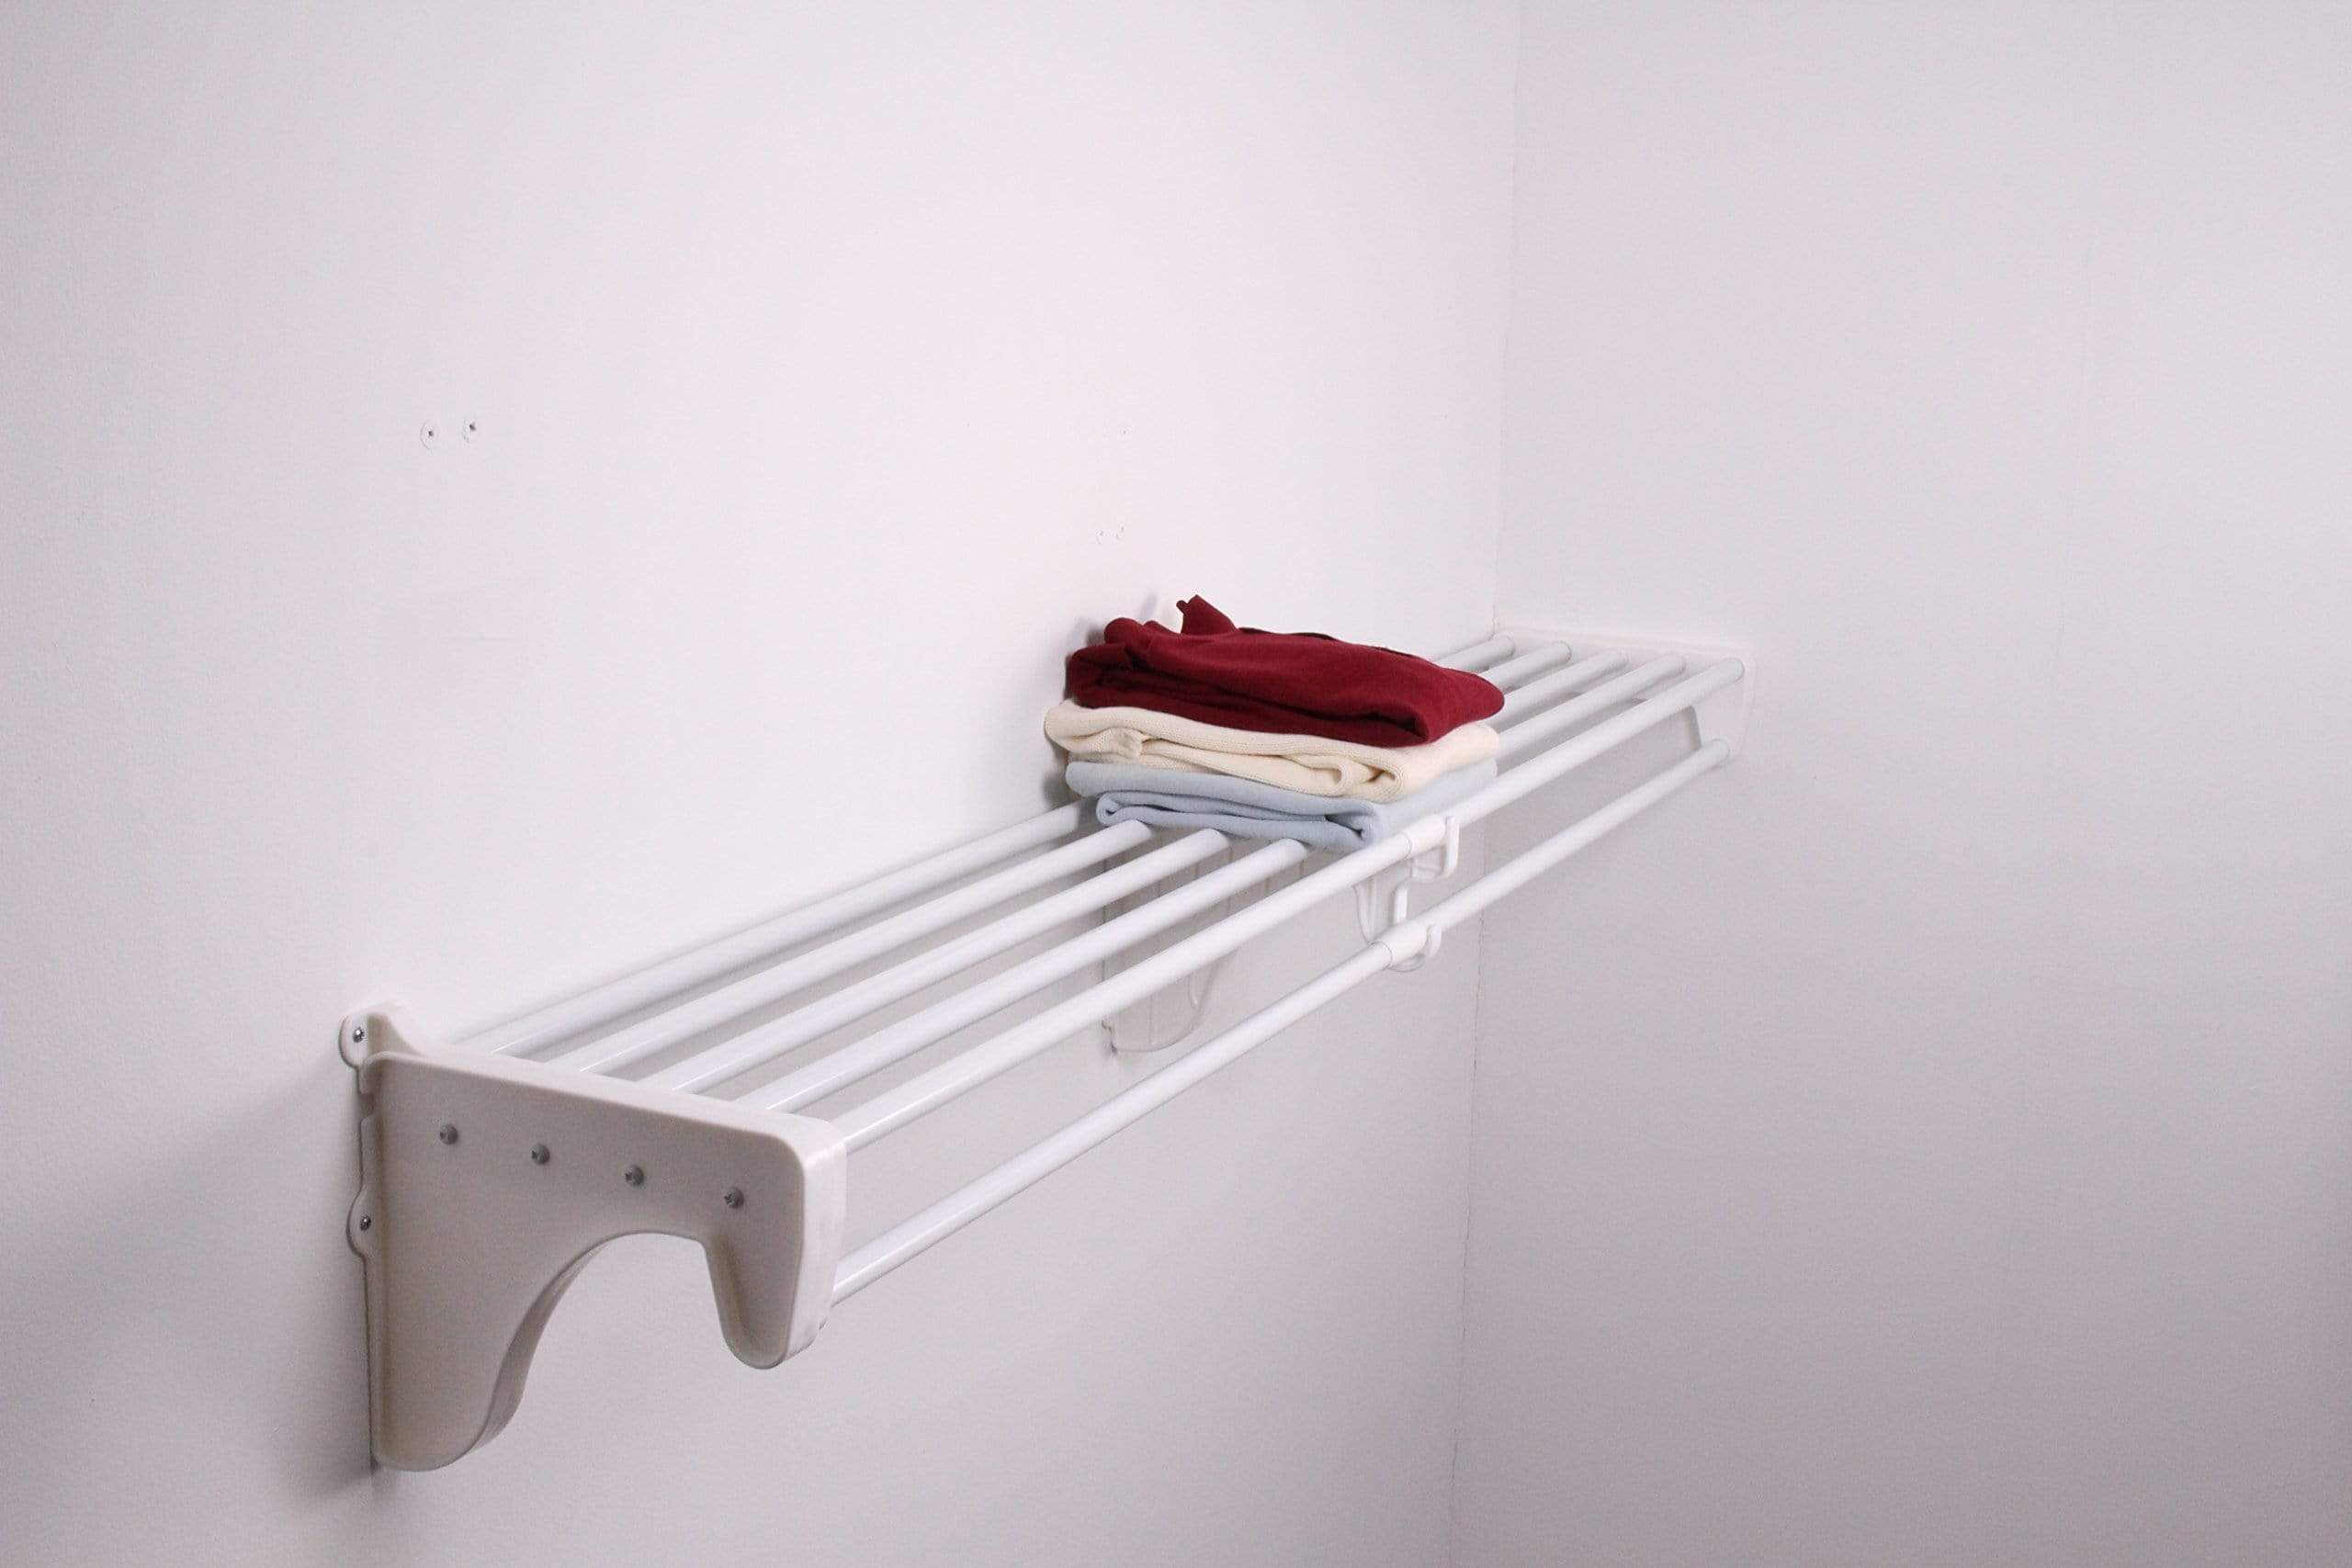 Explore expandable closet rod and shelf units with 1 end bracket finish white